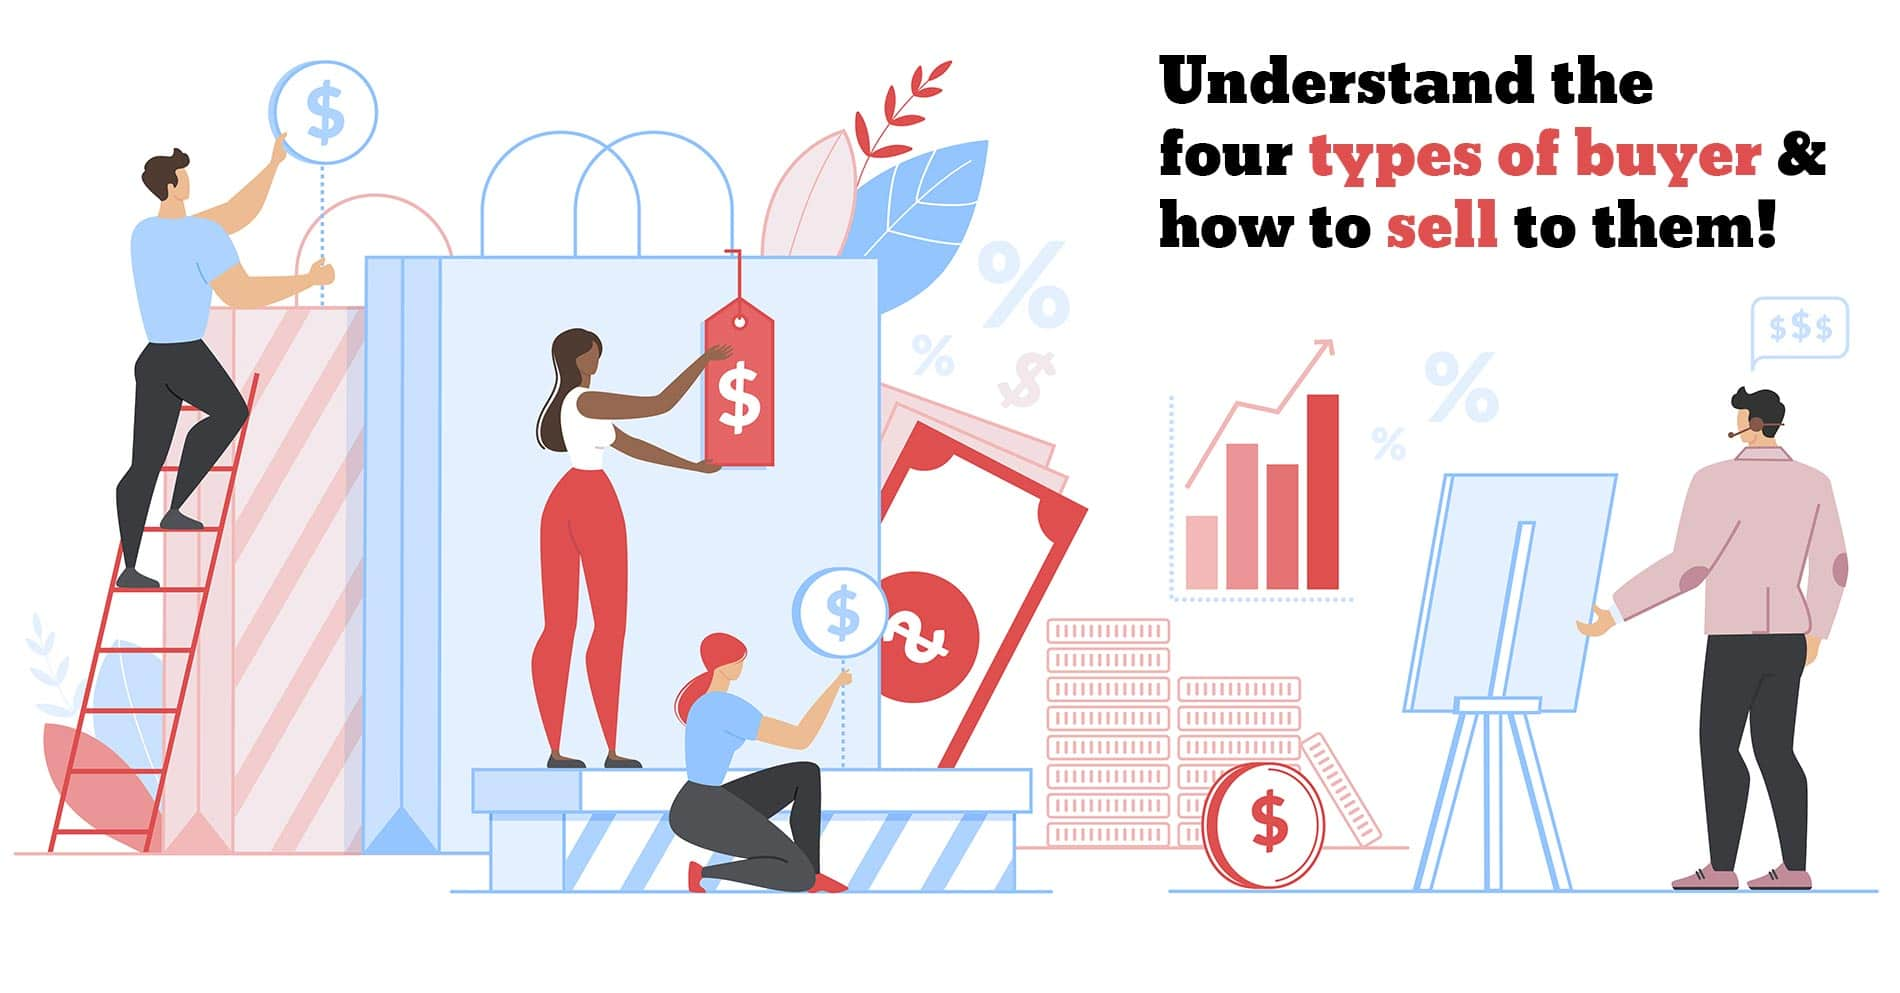 Understand the four types of buyer and how to sell to them